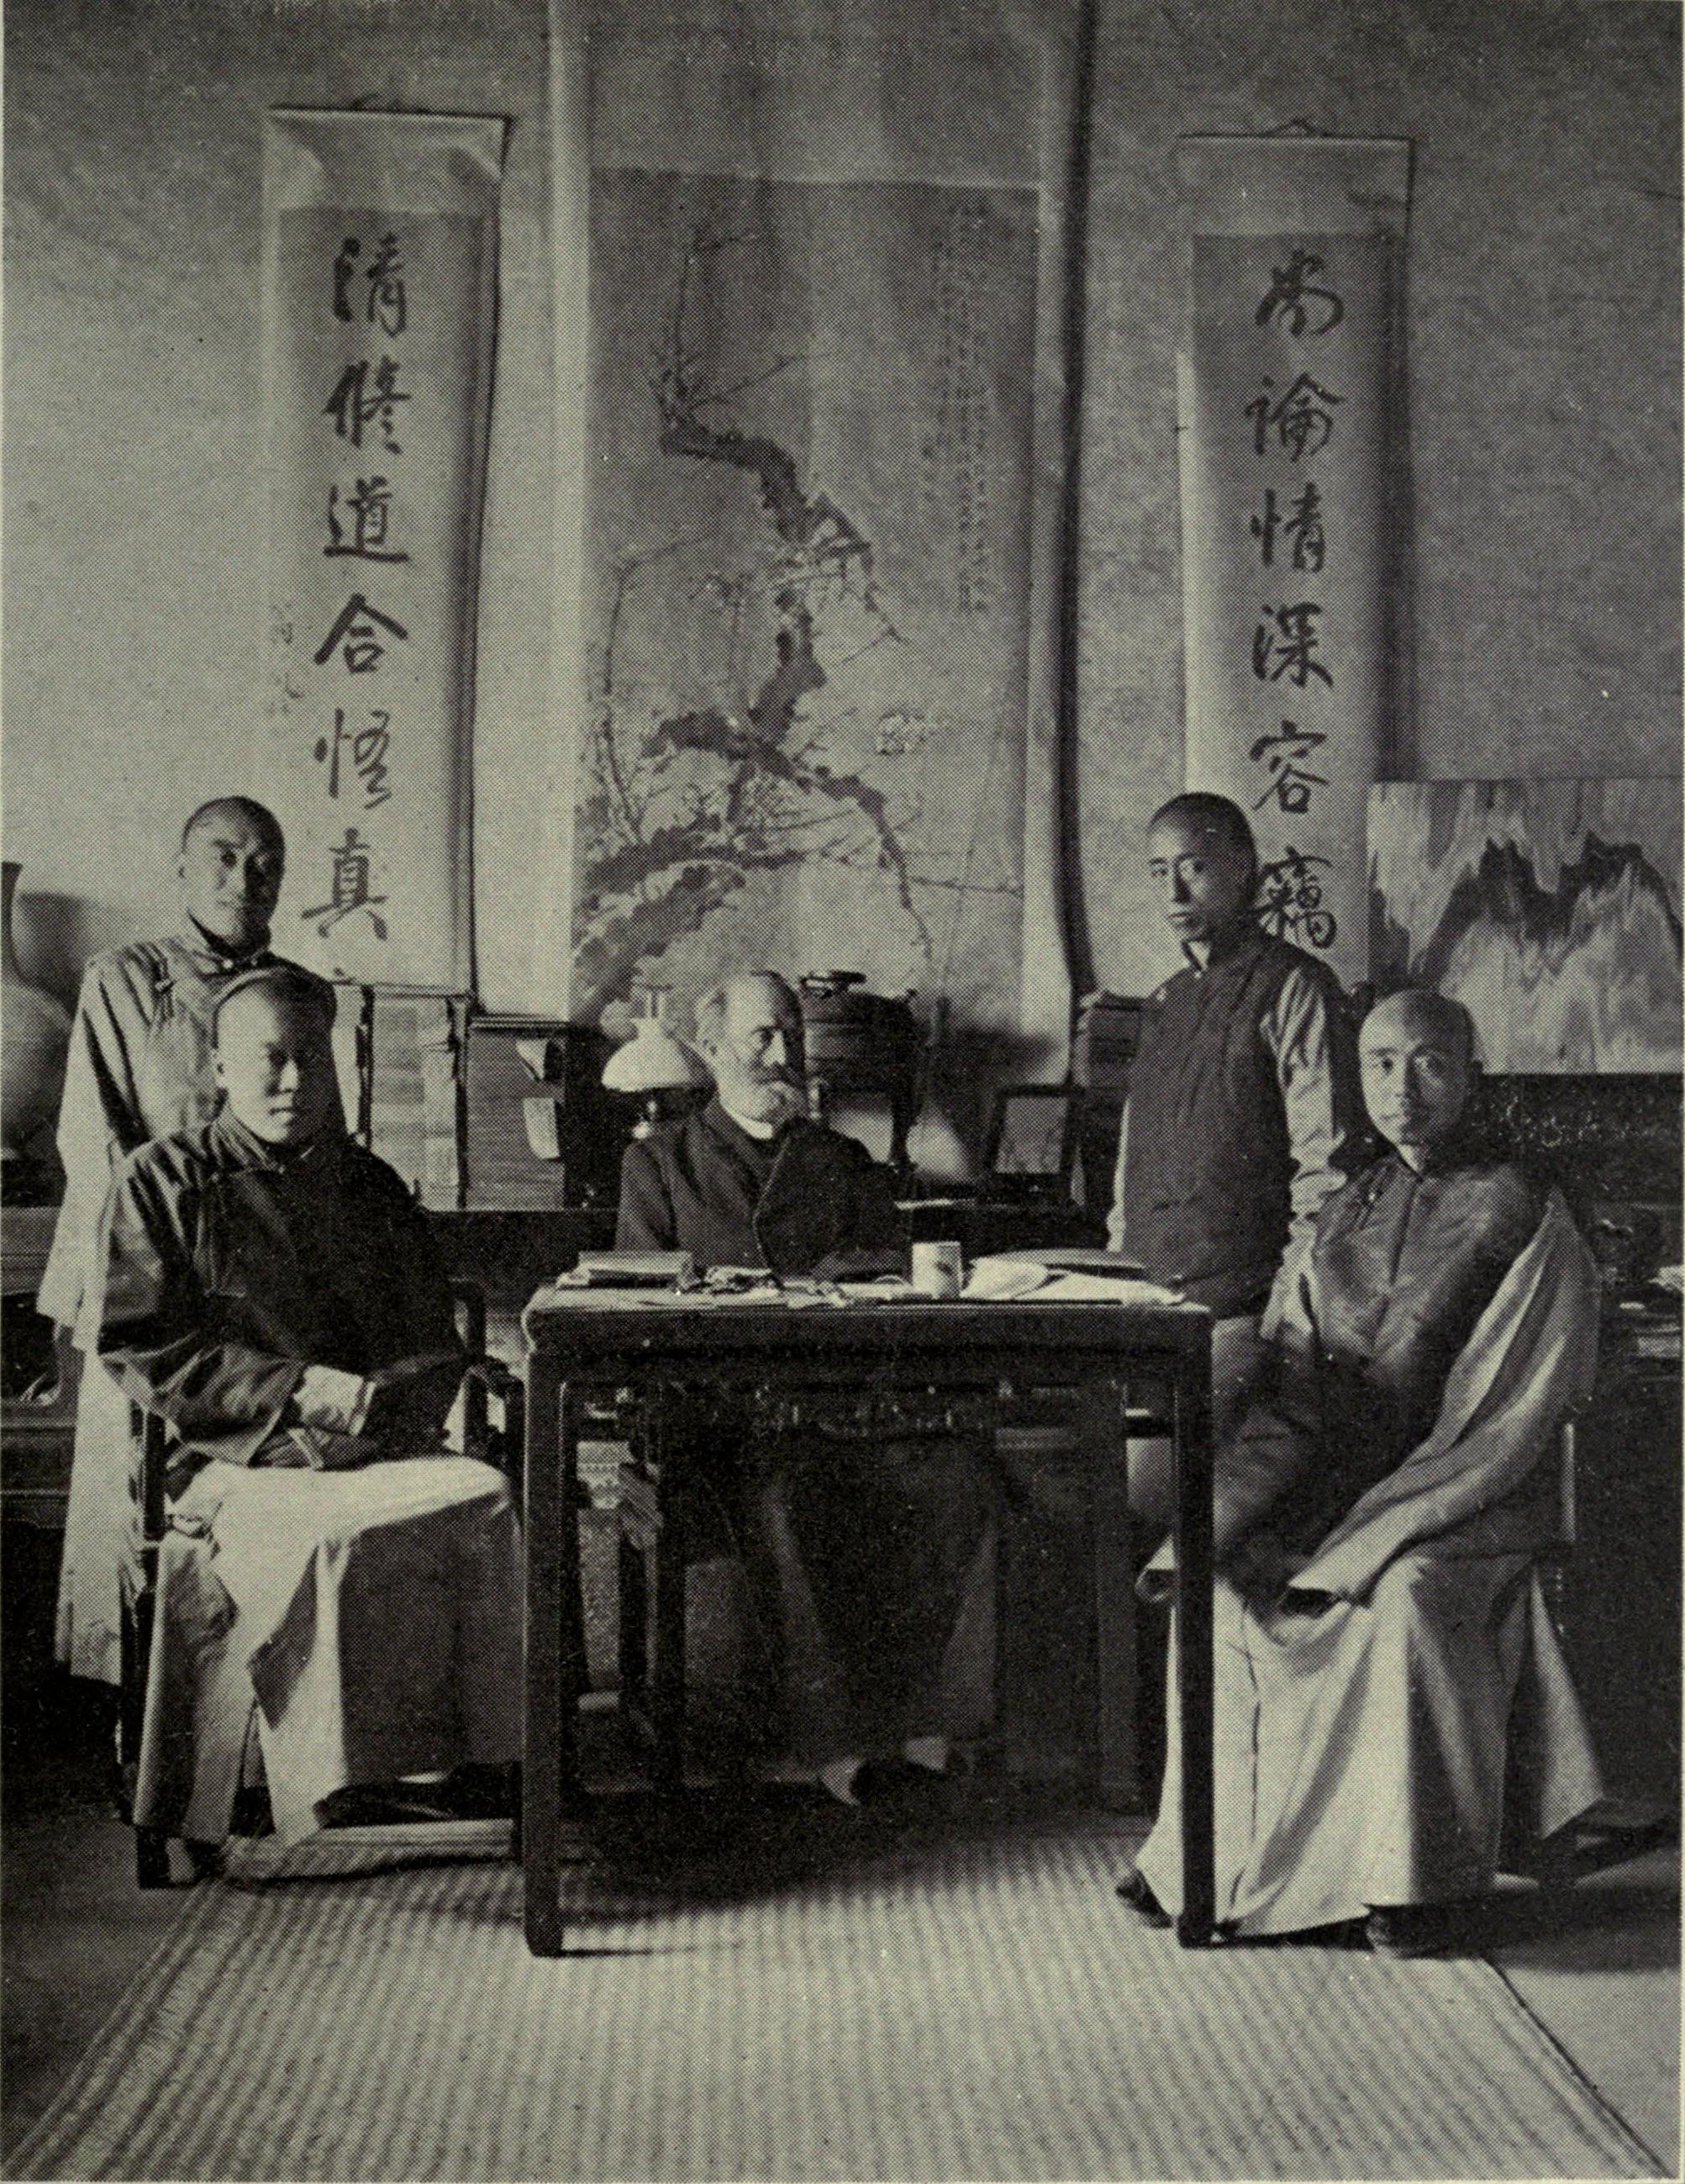 W.A.P. Martin and his students.